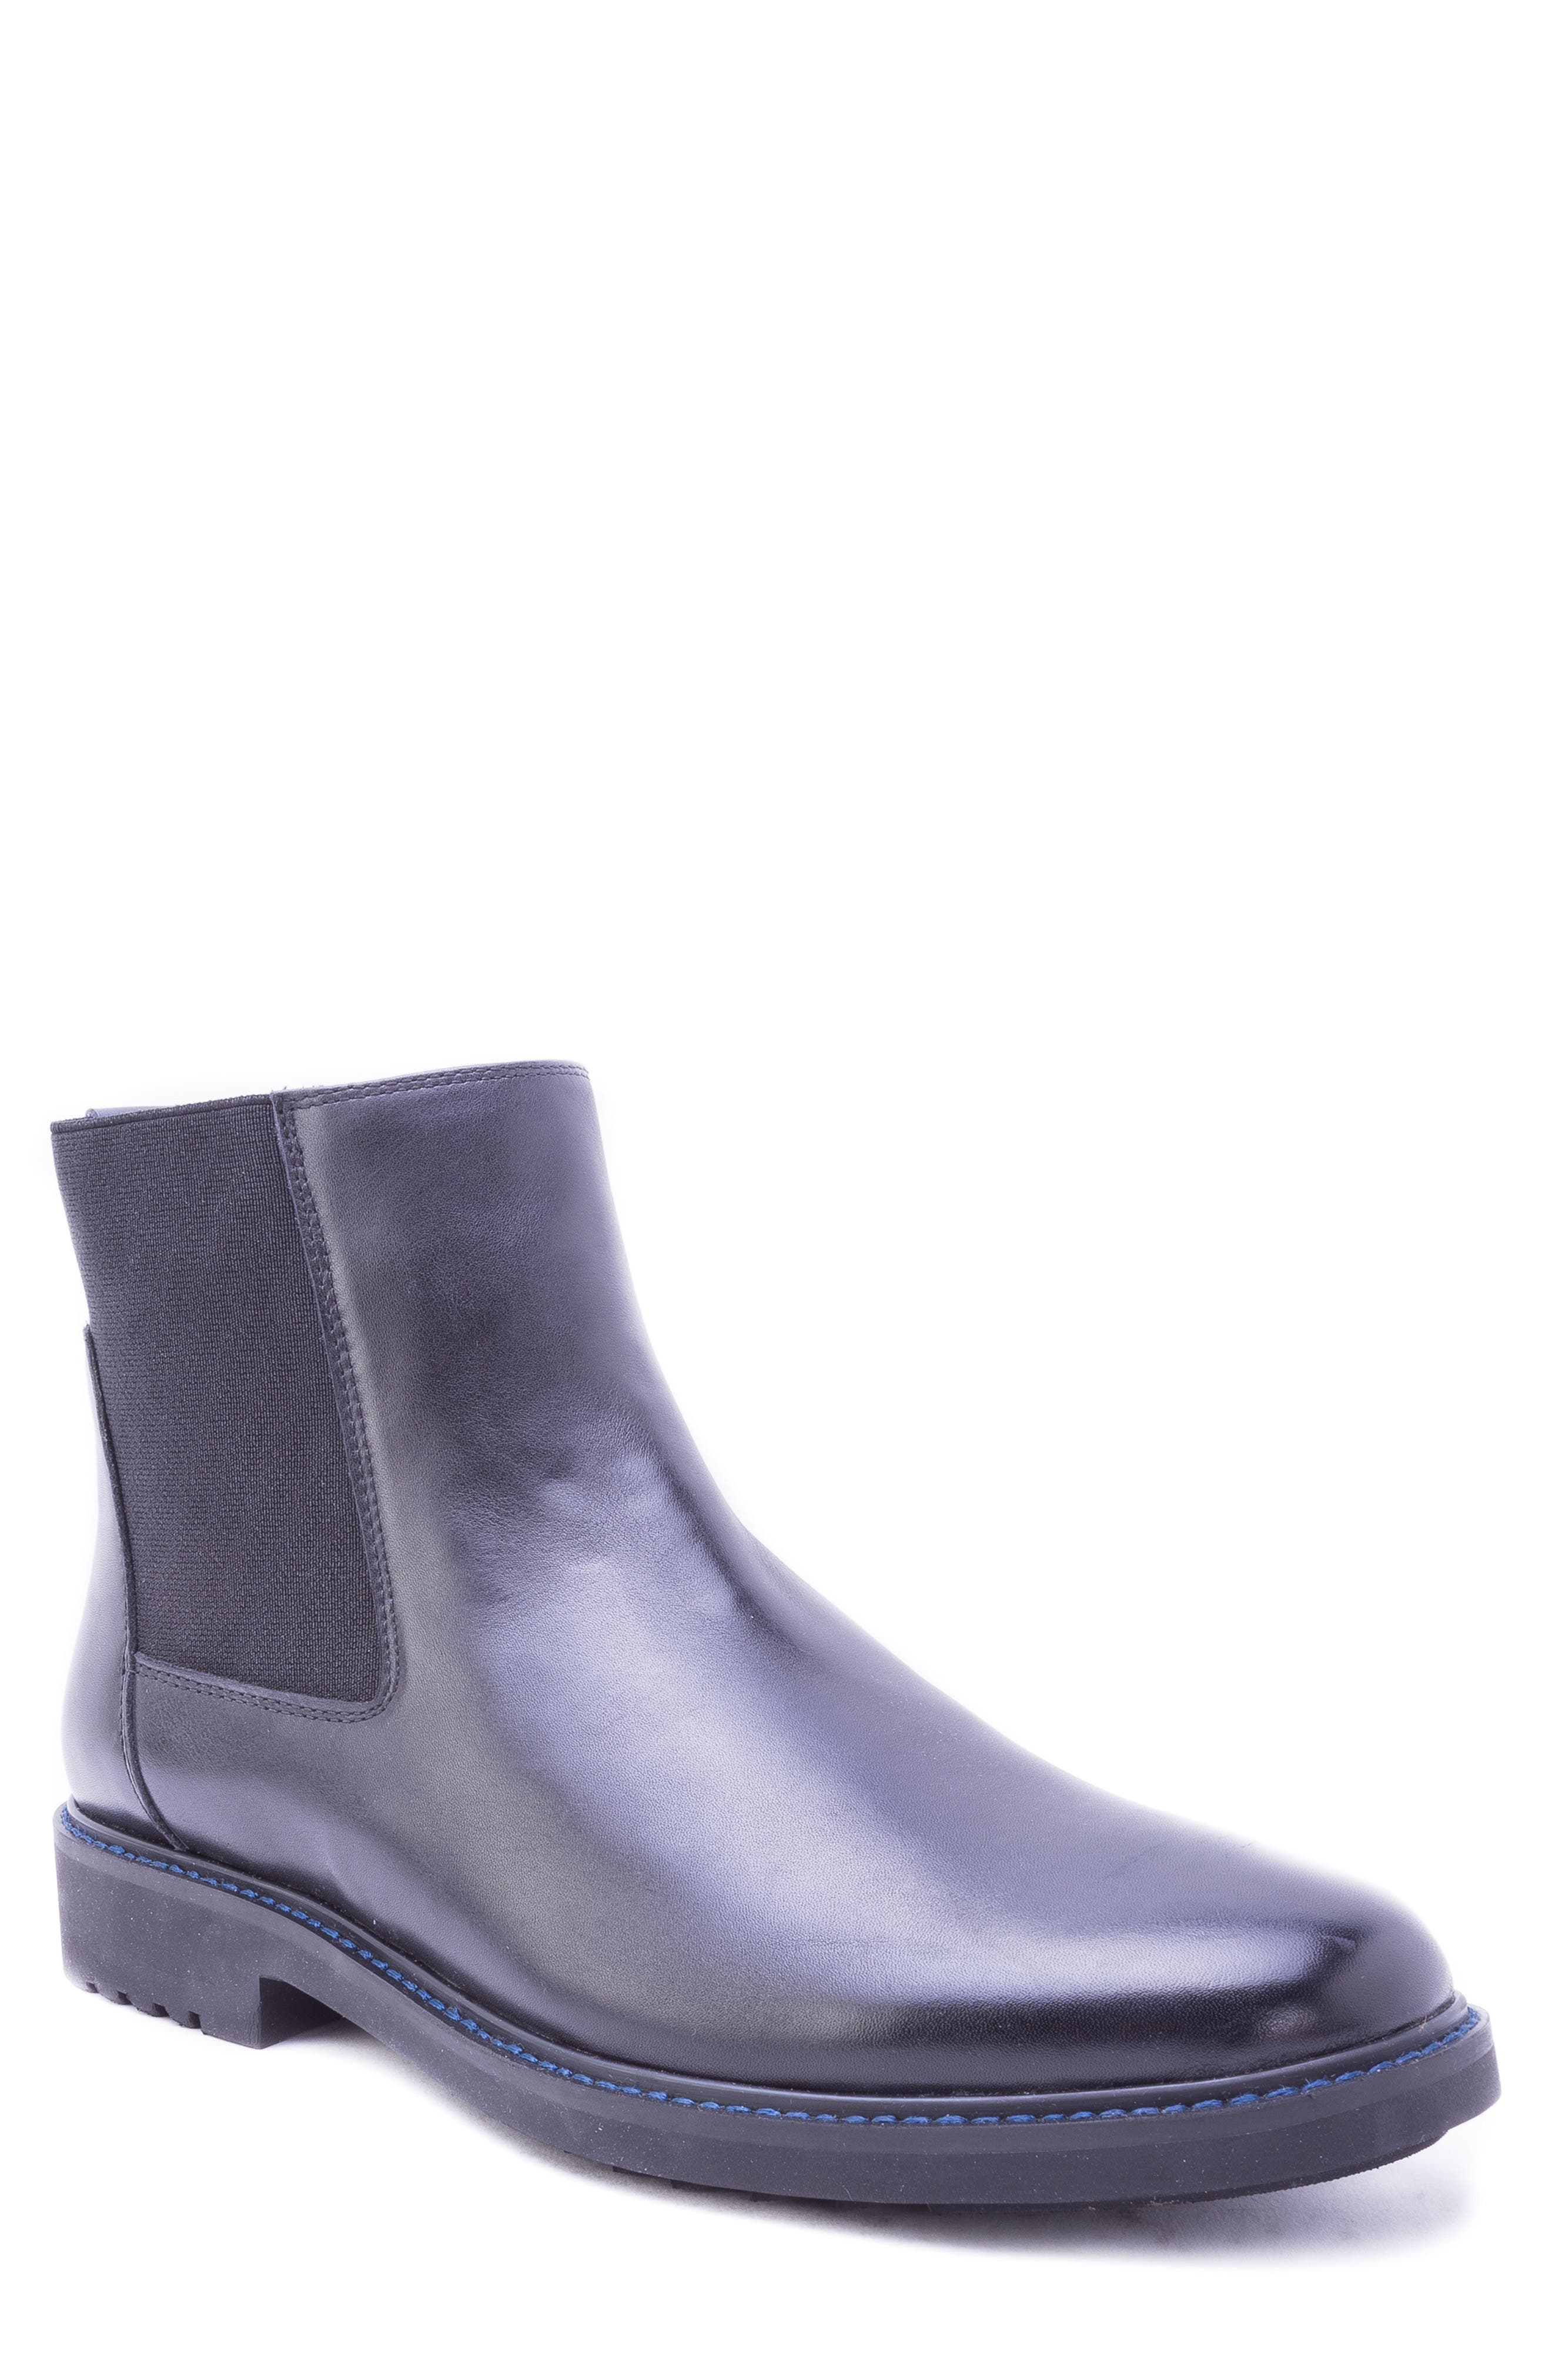 Riviere Chelsea Boot,                             Main thumbnail 1, color,                             001